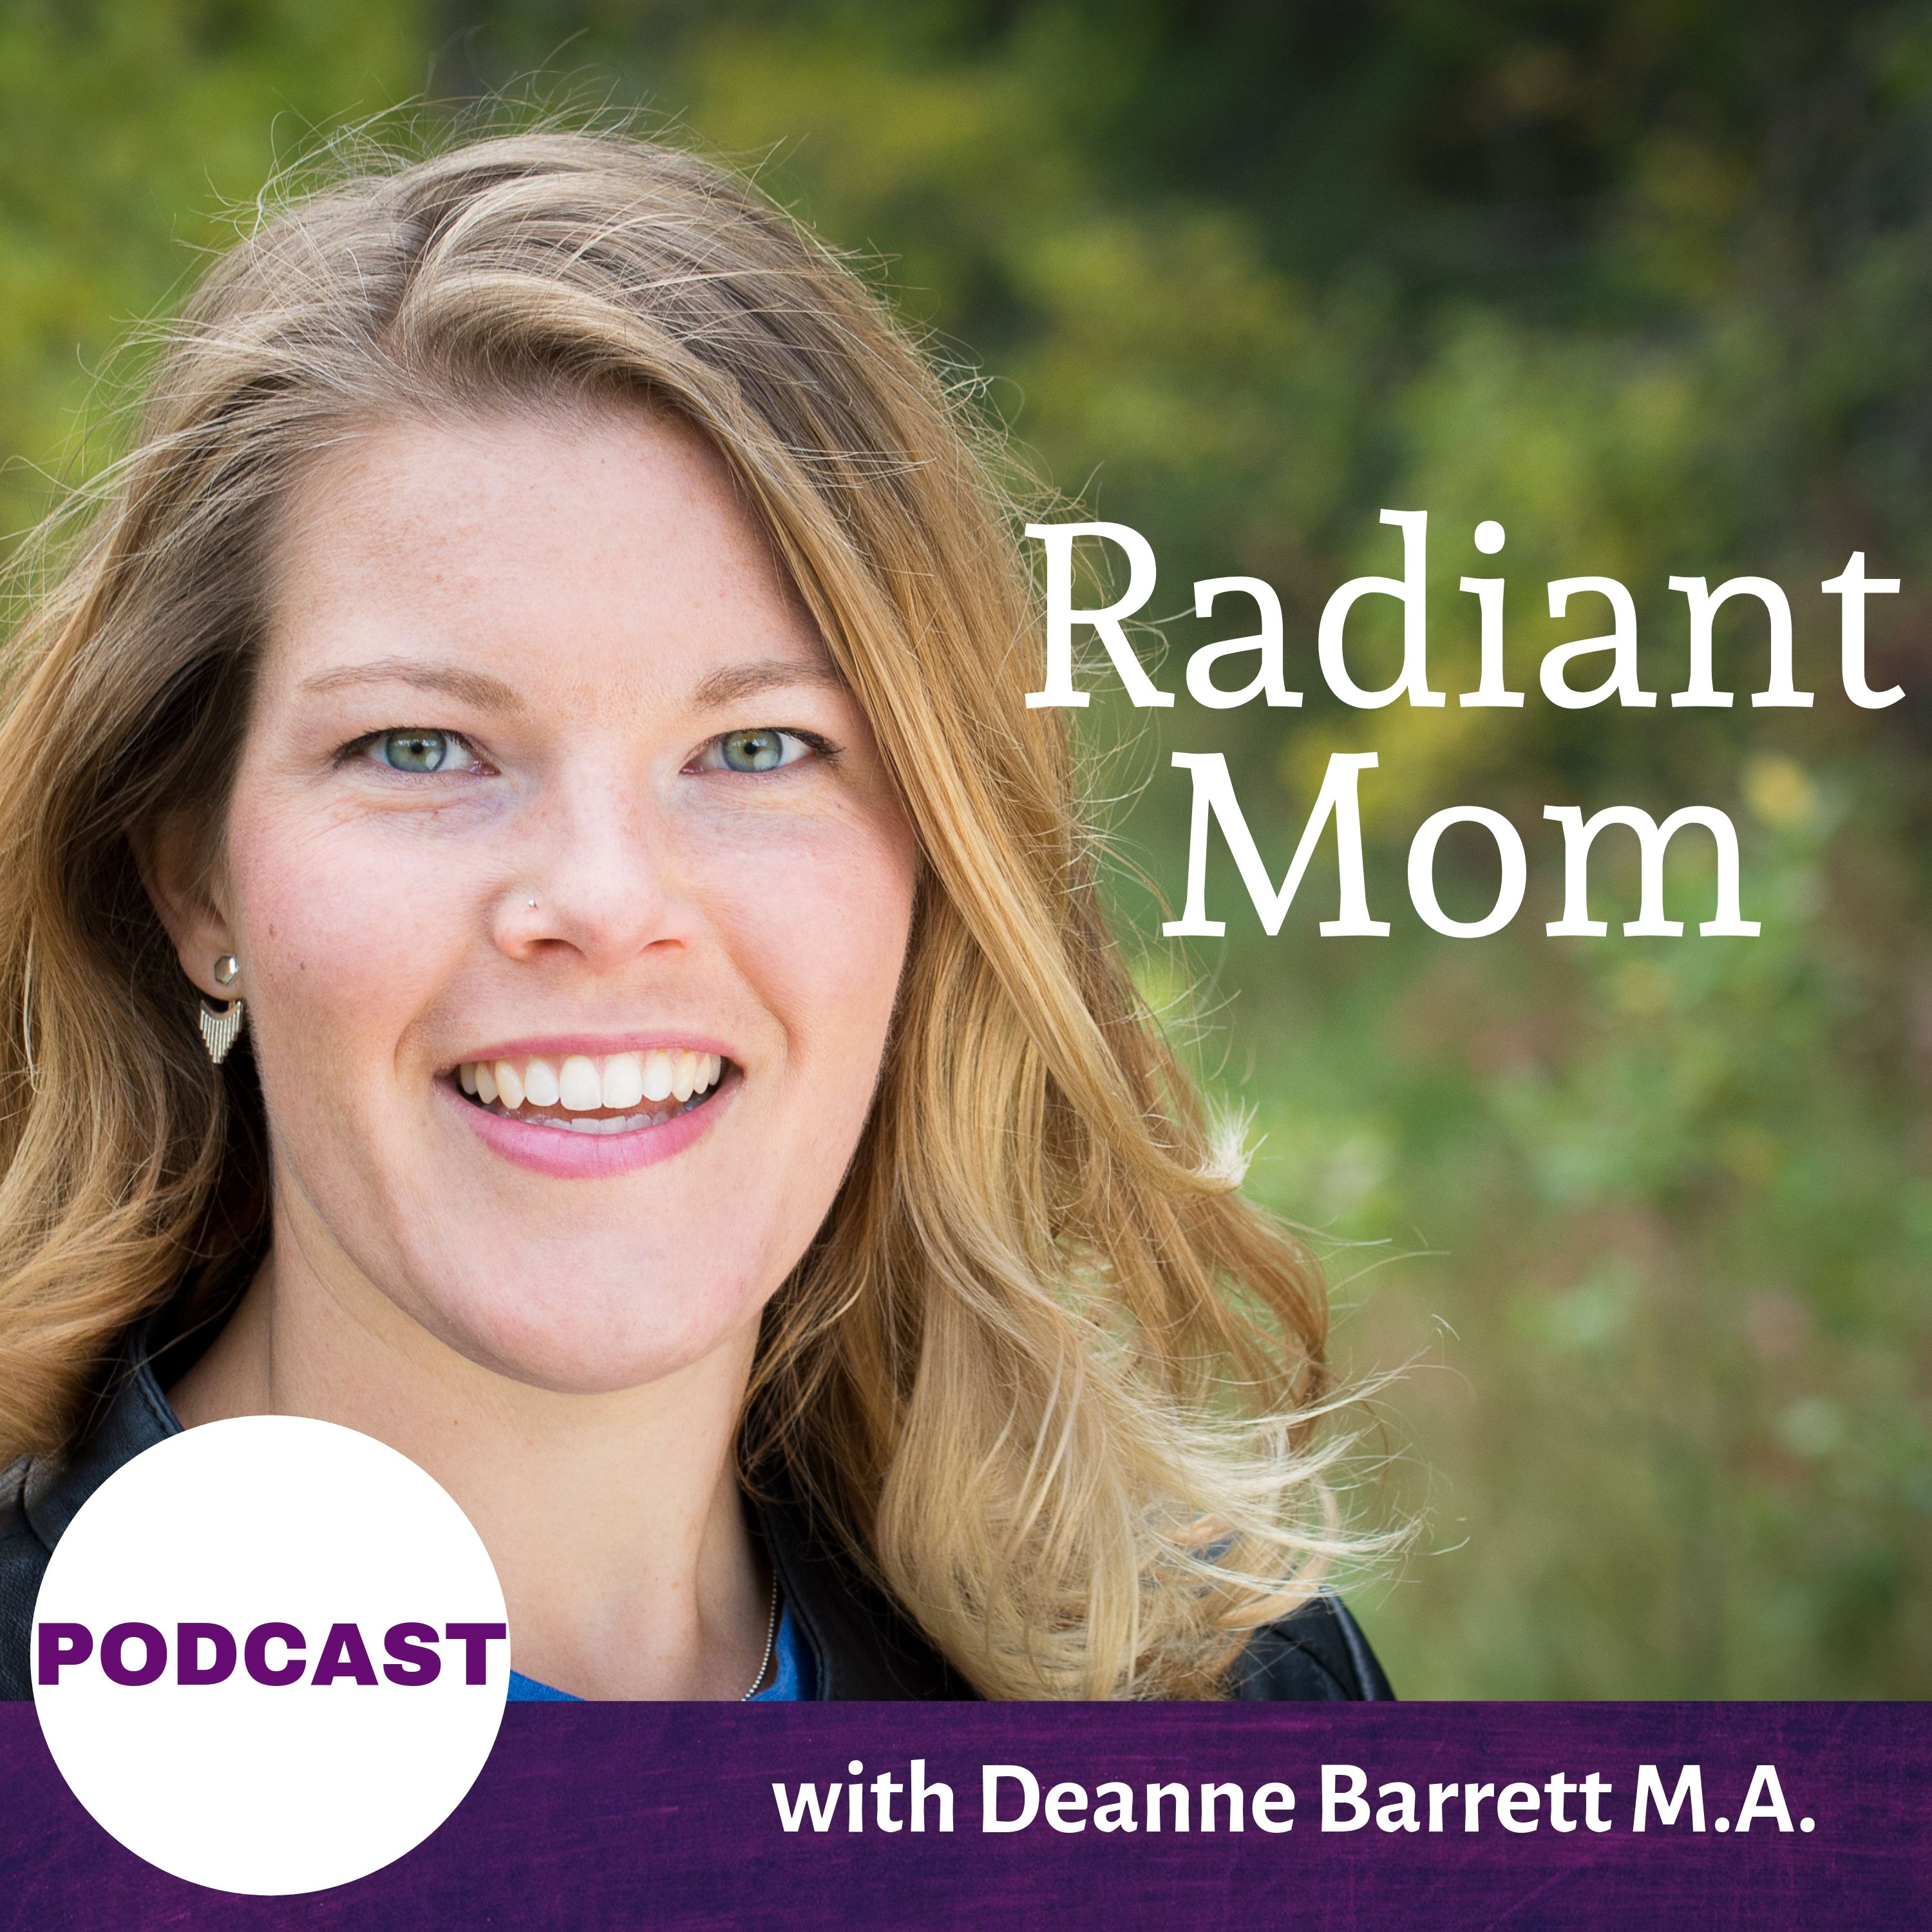 106. Bold sexy warrior mom and the courage to be your authentic self, interview with Rosalyn Fung